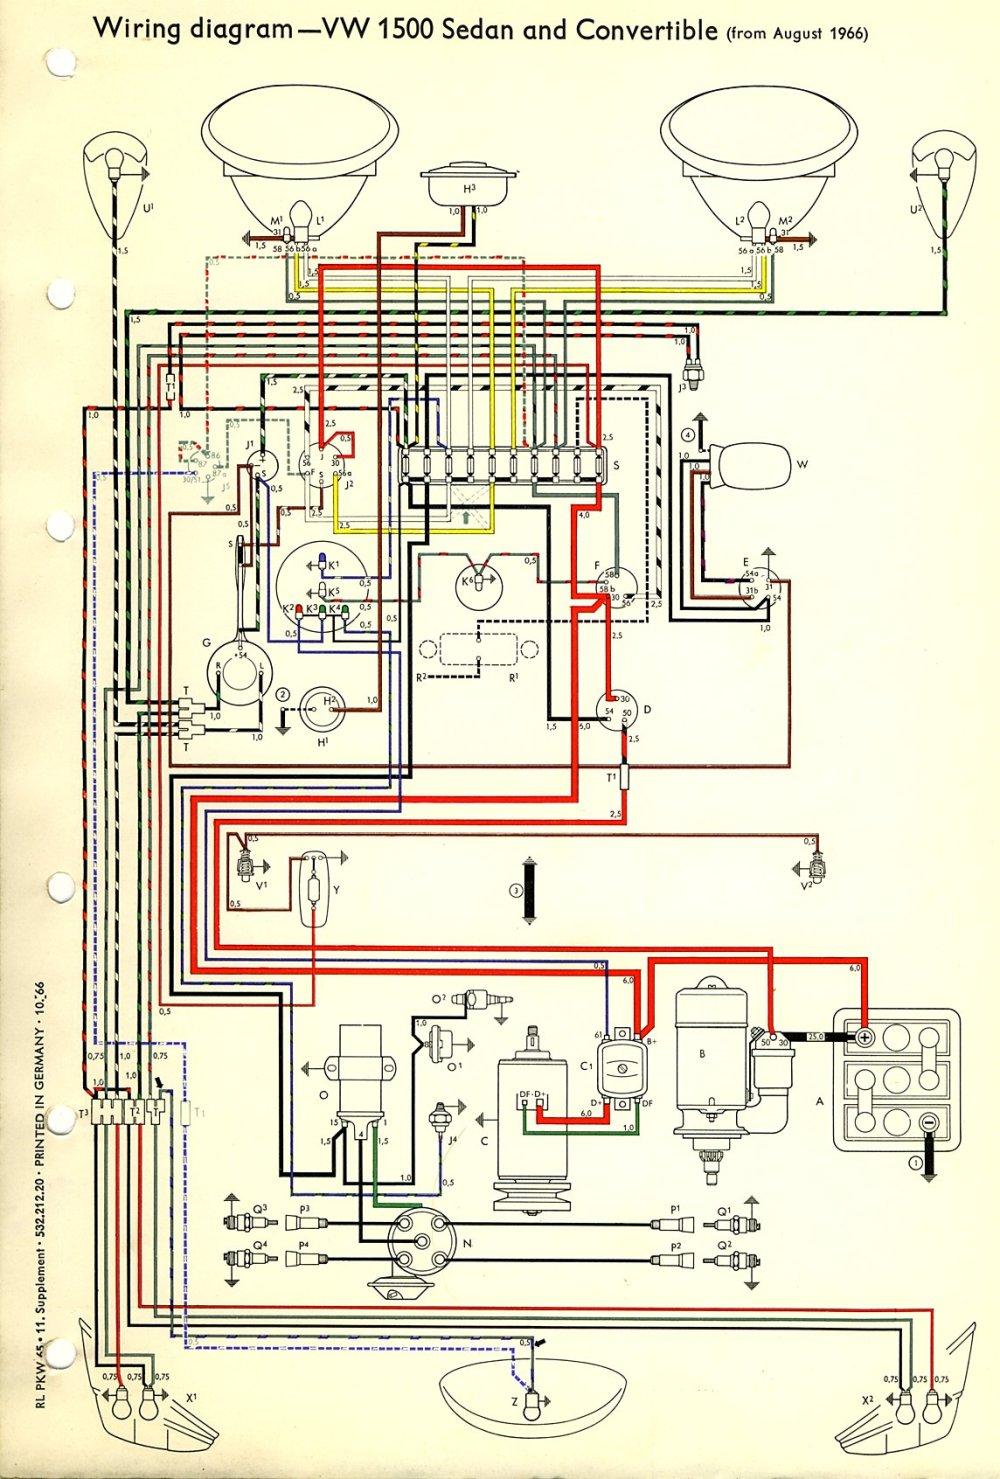 medium resolution of 1957 vw wiring diagram wiring diagram schematic name ammeter gauge wiring diagram 1957 vw wiring diagram